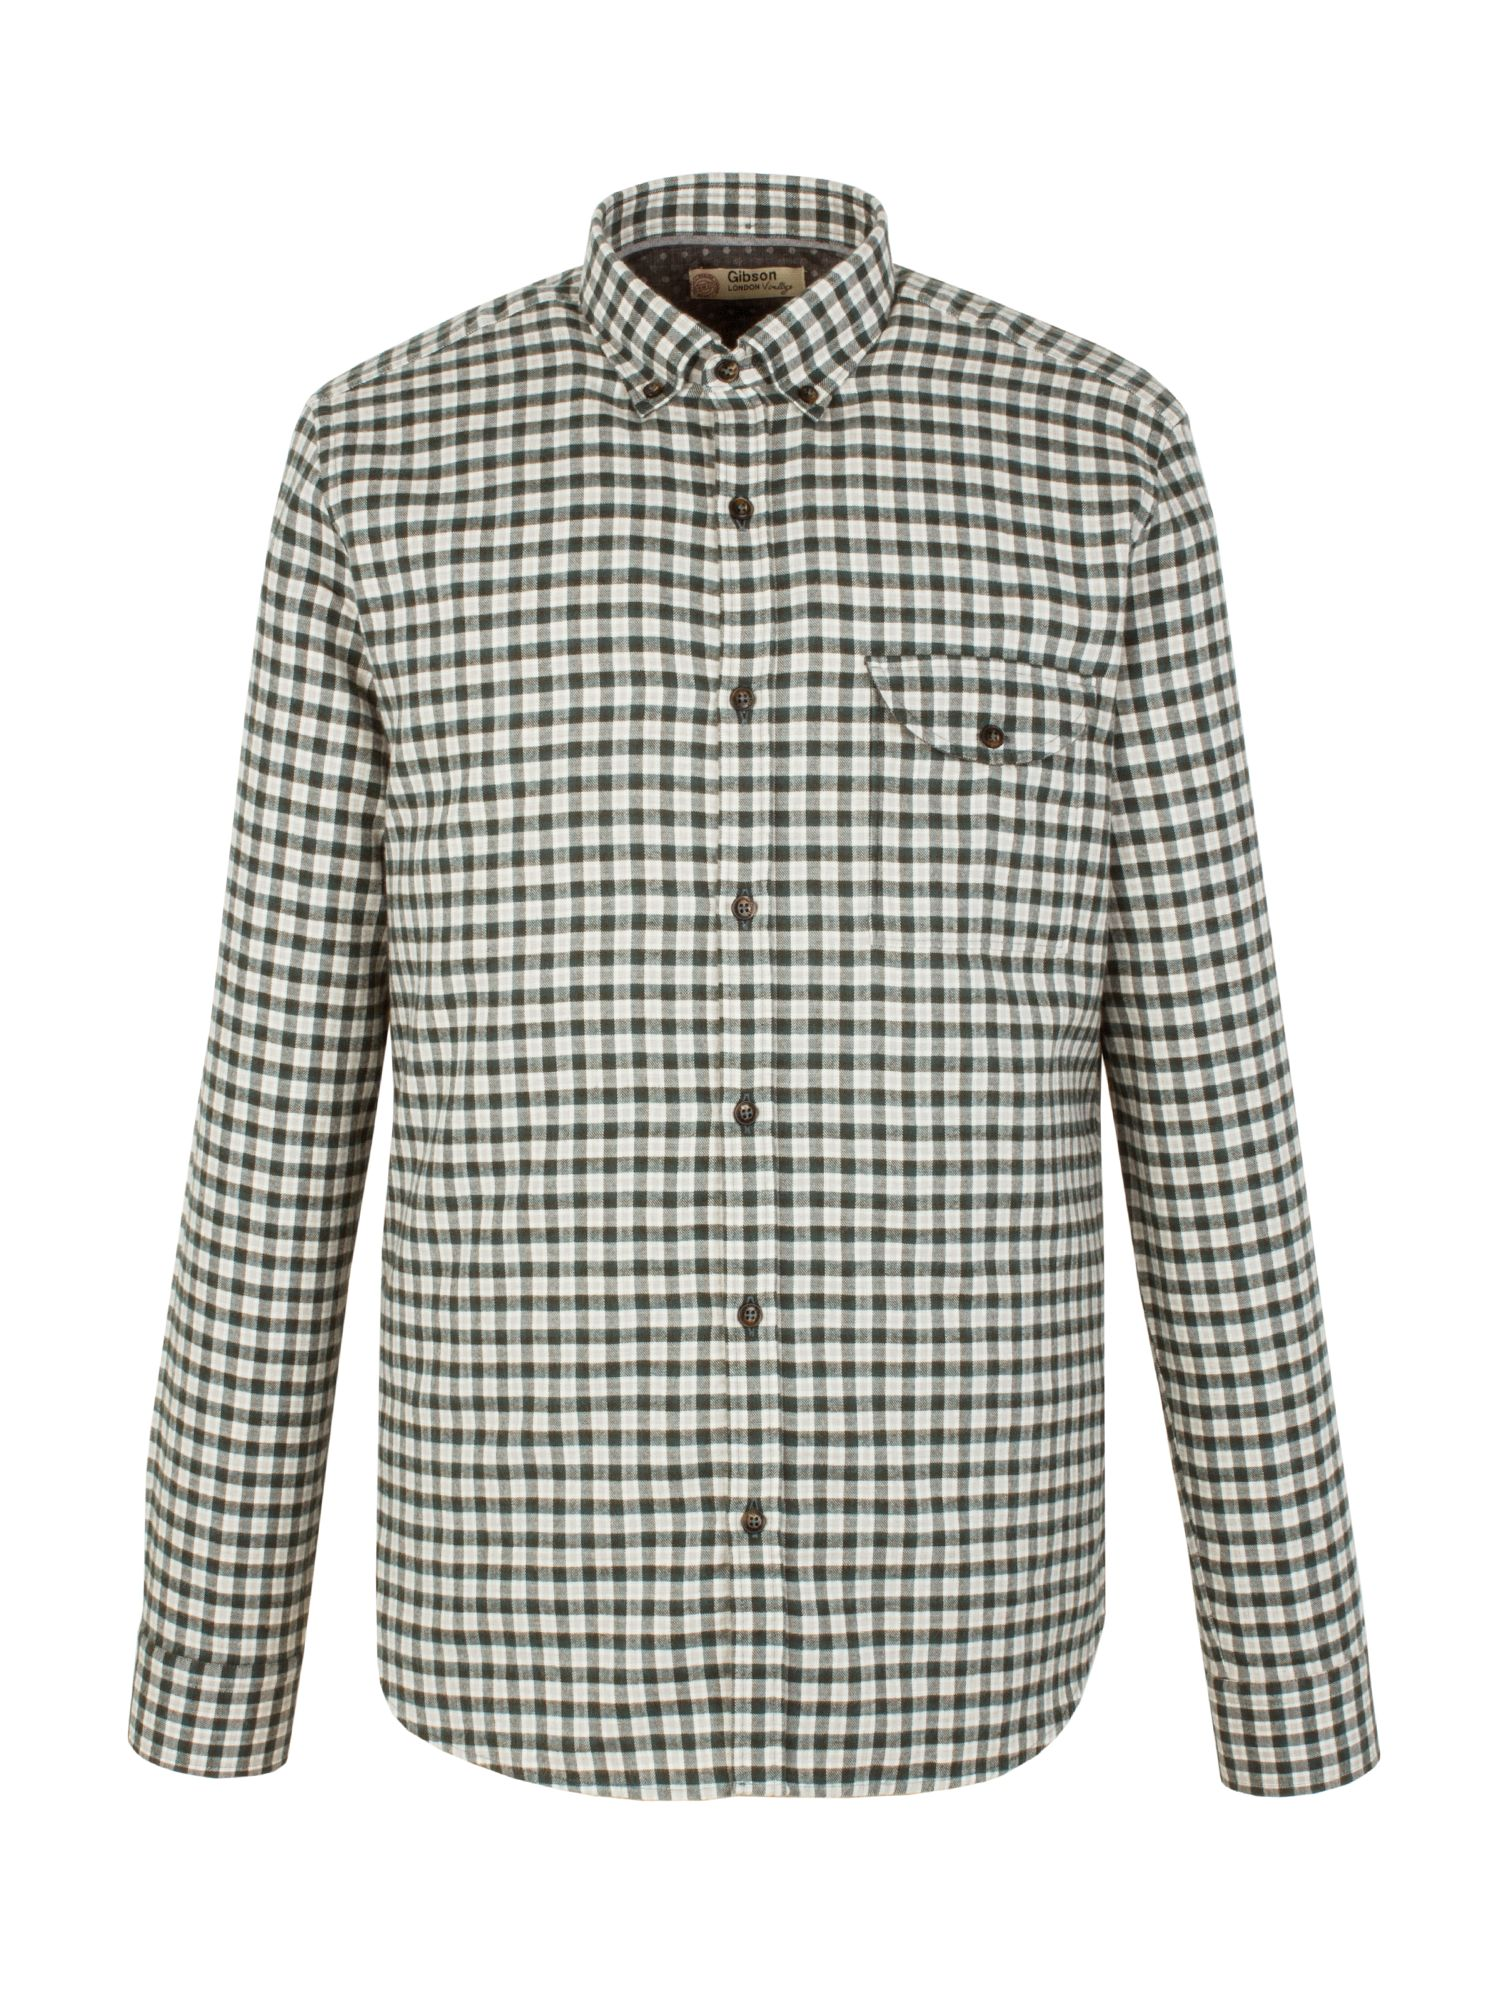 Men's Gibson Check Tailored Fit Long Sleeve Shirt, Green